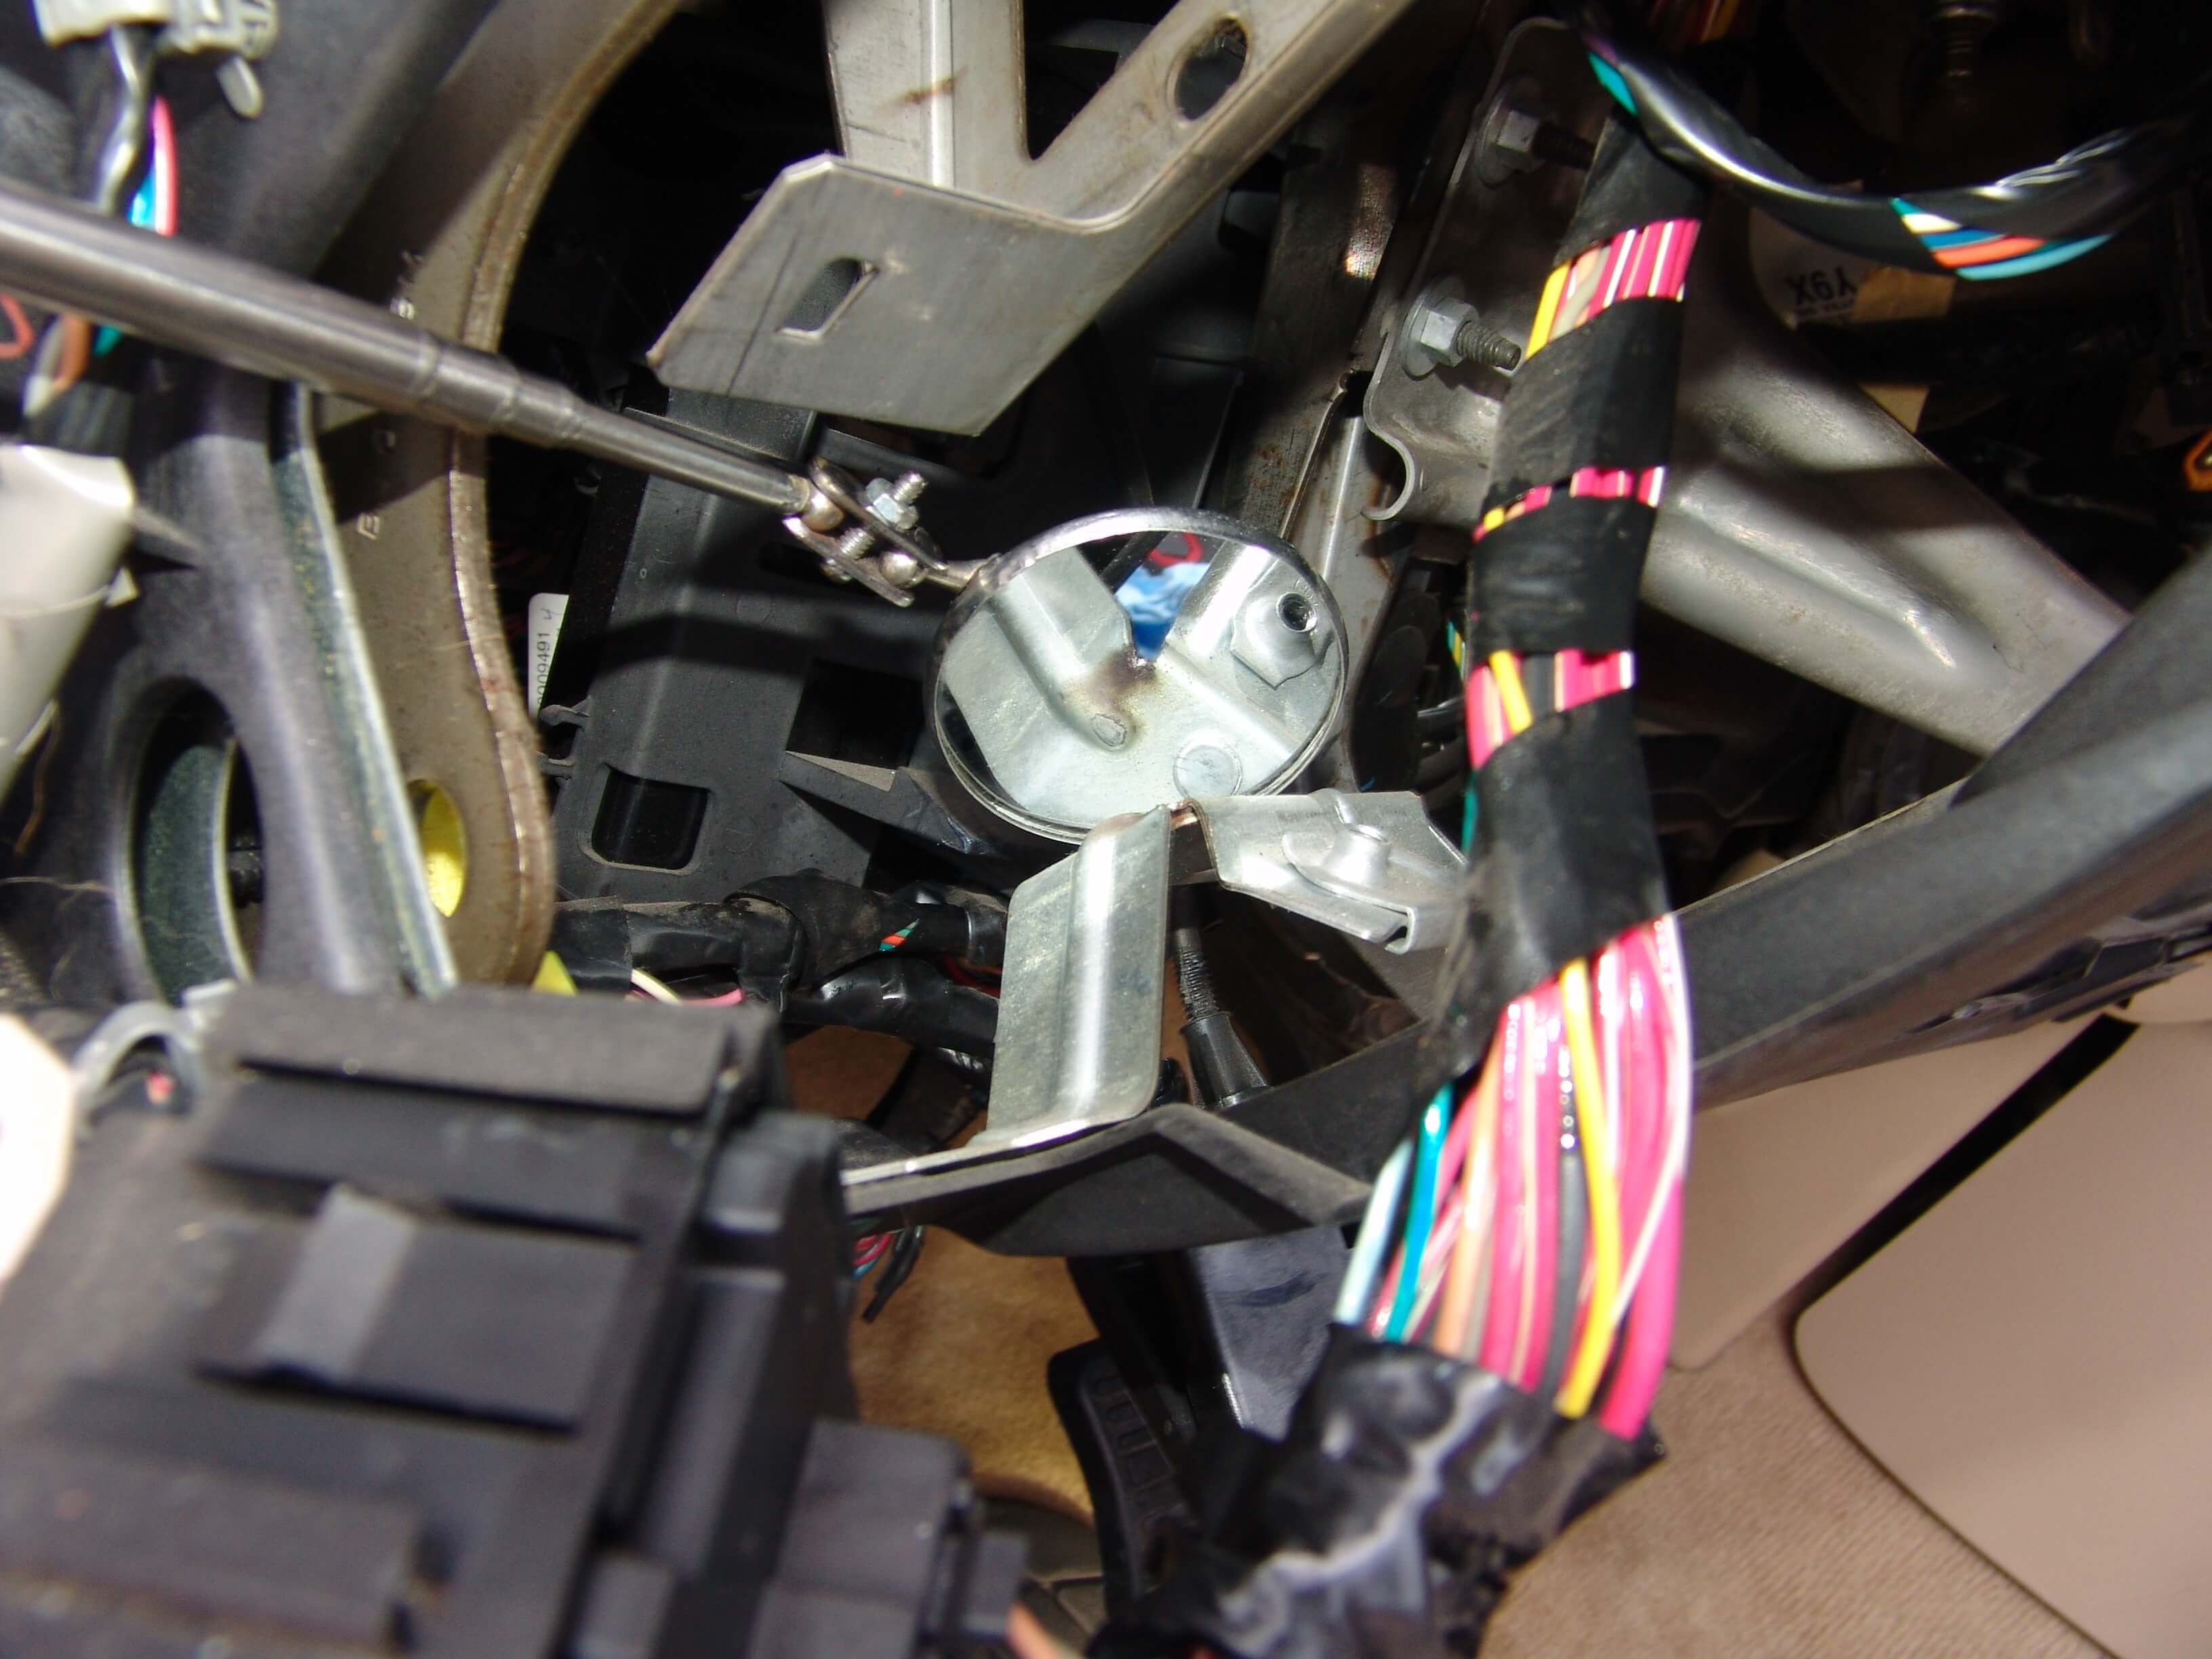 Sparkys Answers 2007 Chevrolet Tahoe Lt Lbec2 Fuse 75 Blows 2003 Gmc Yukon Denali Wiring Harness I Repaired The Damage To Wire Insulation By Wrapping It With Tape Then Reformed So That Would No Longer Rub On Any Brackets